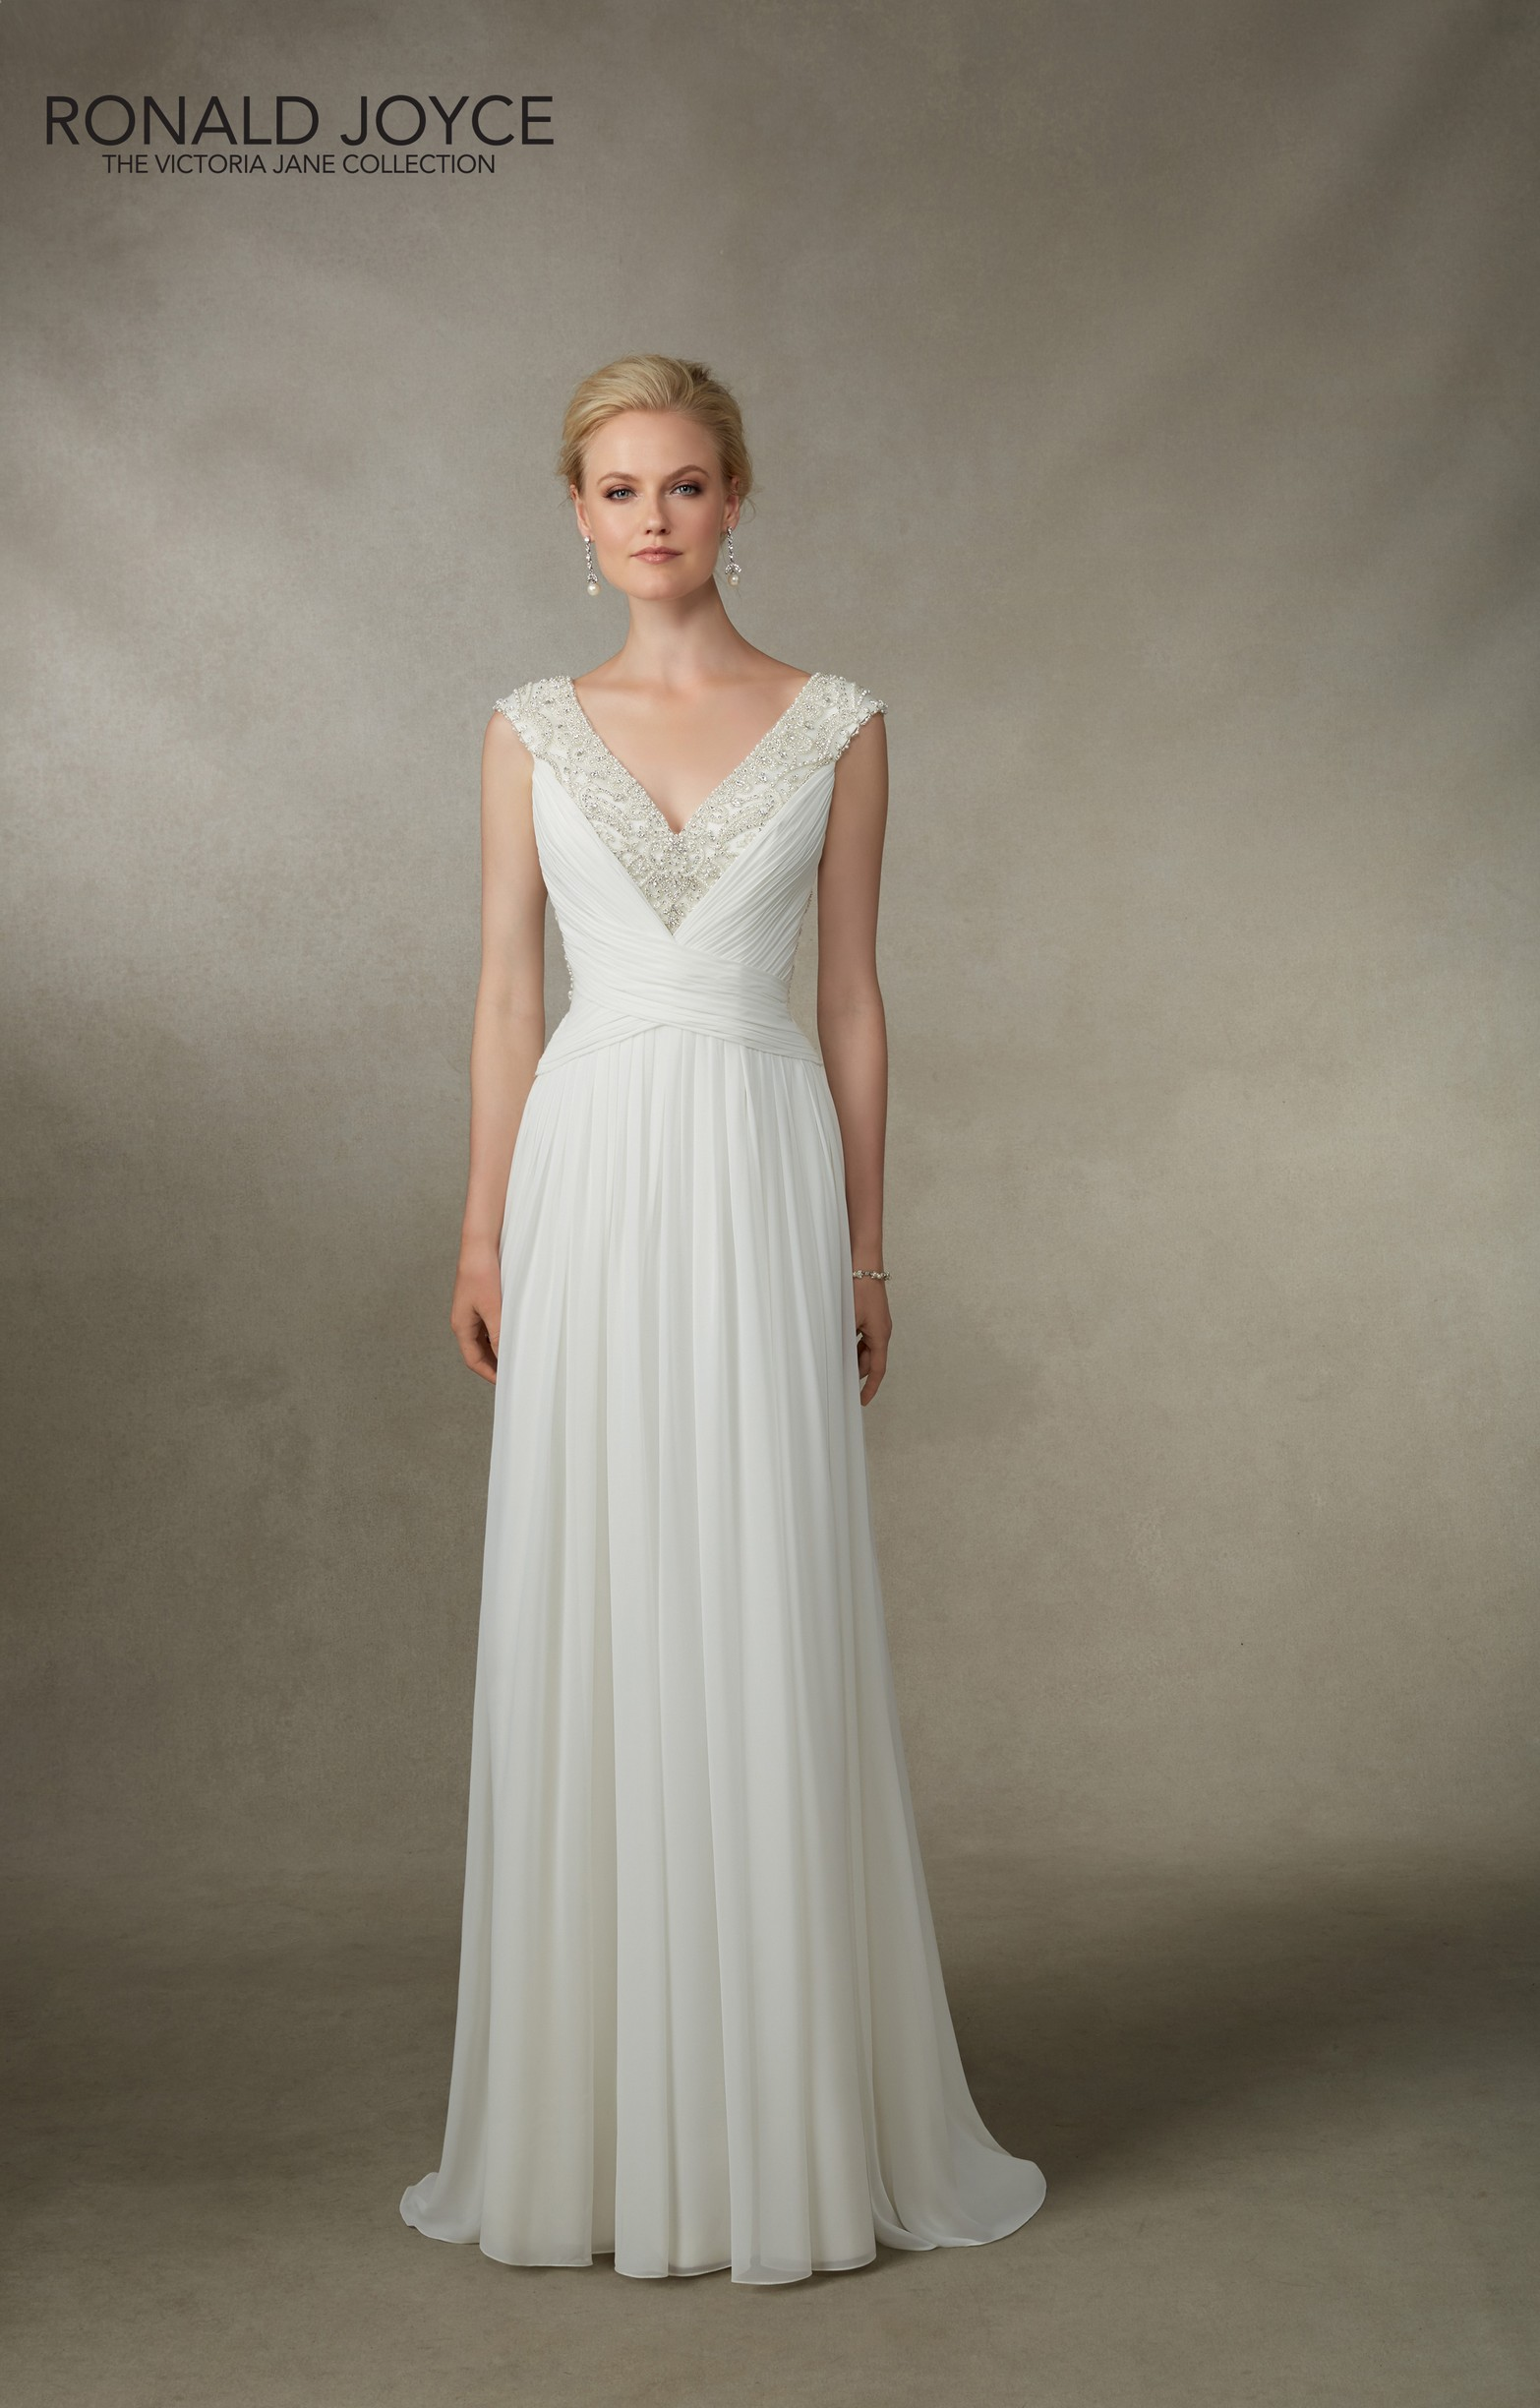 victoria jane grecian style wedding dresses Jamesina A GRECIAN STYLE DRESS WITH RUCHED CHIFFON EXQUISITE BEADED NECKLINE AND ILLUSION BACK